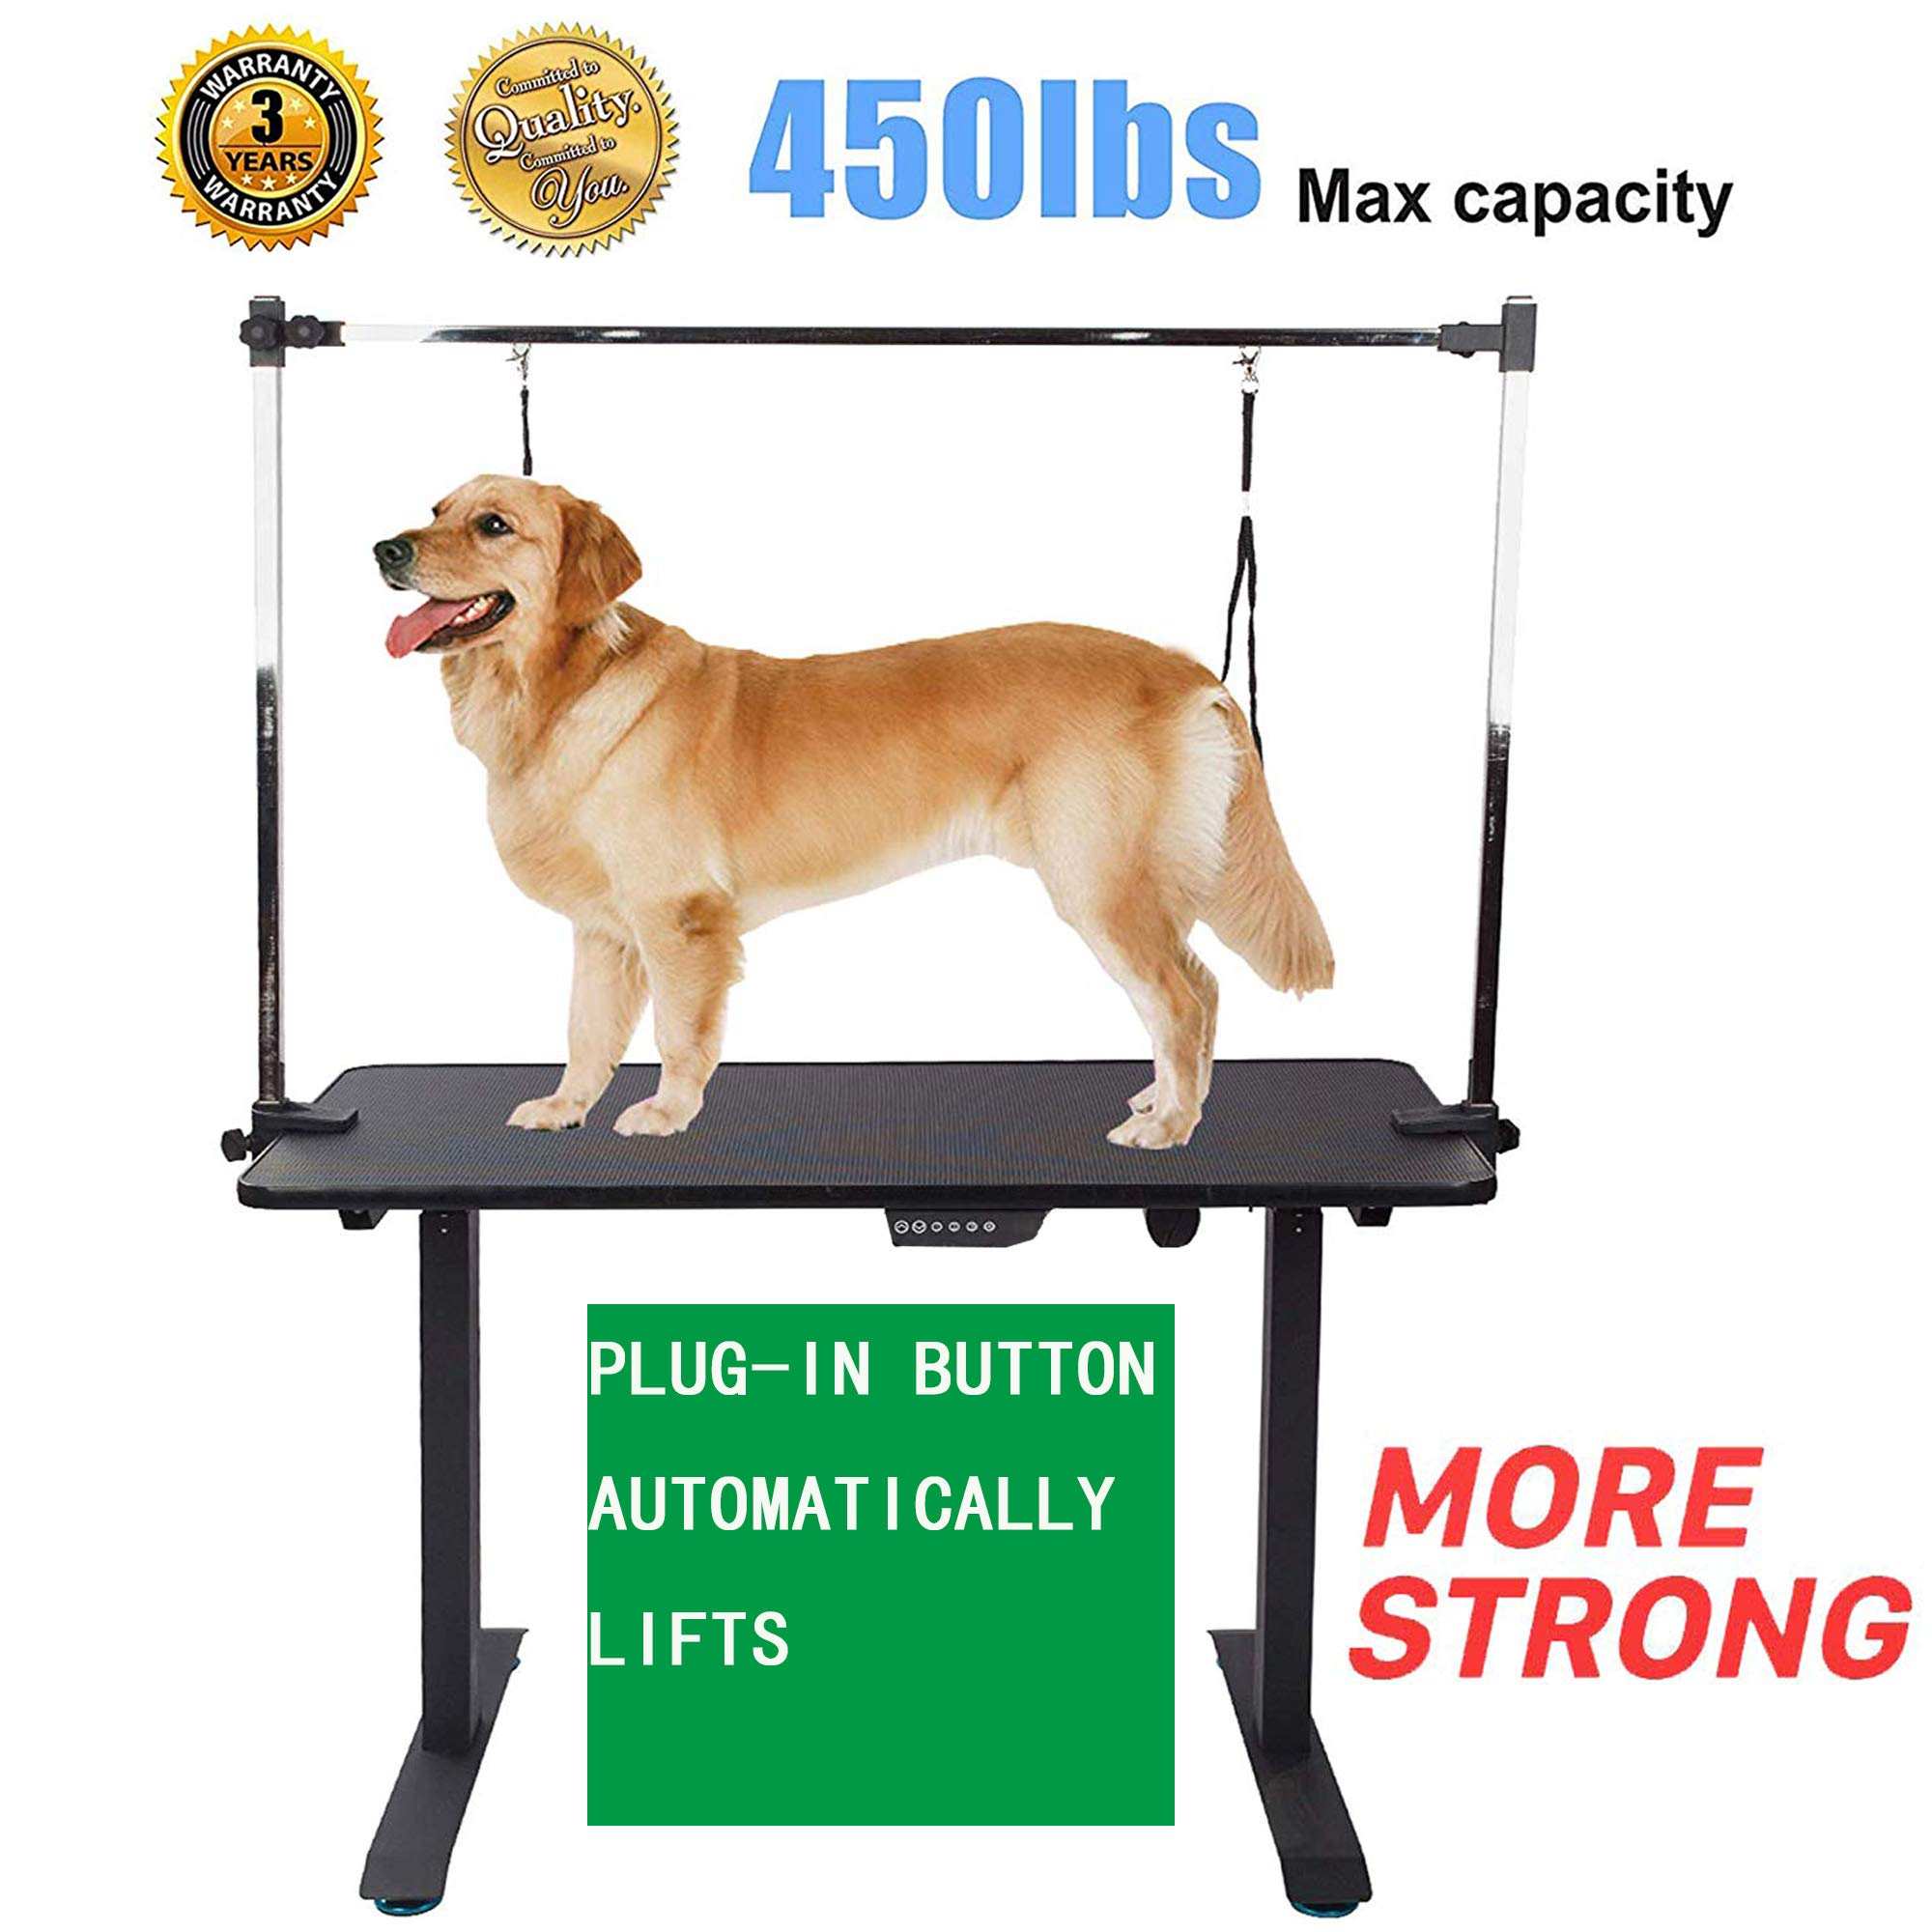 Haige Pet Your Pet Nanny Heavy Duty Electric Lift Dog Grooming Table with Arm Leash Loop Height Professional for Large Medium Dog, 46.1'' L x 23.6'' W x 27.6-45.3'' H